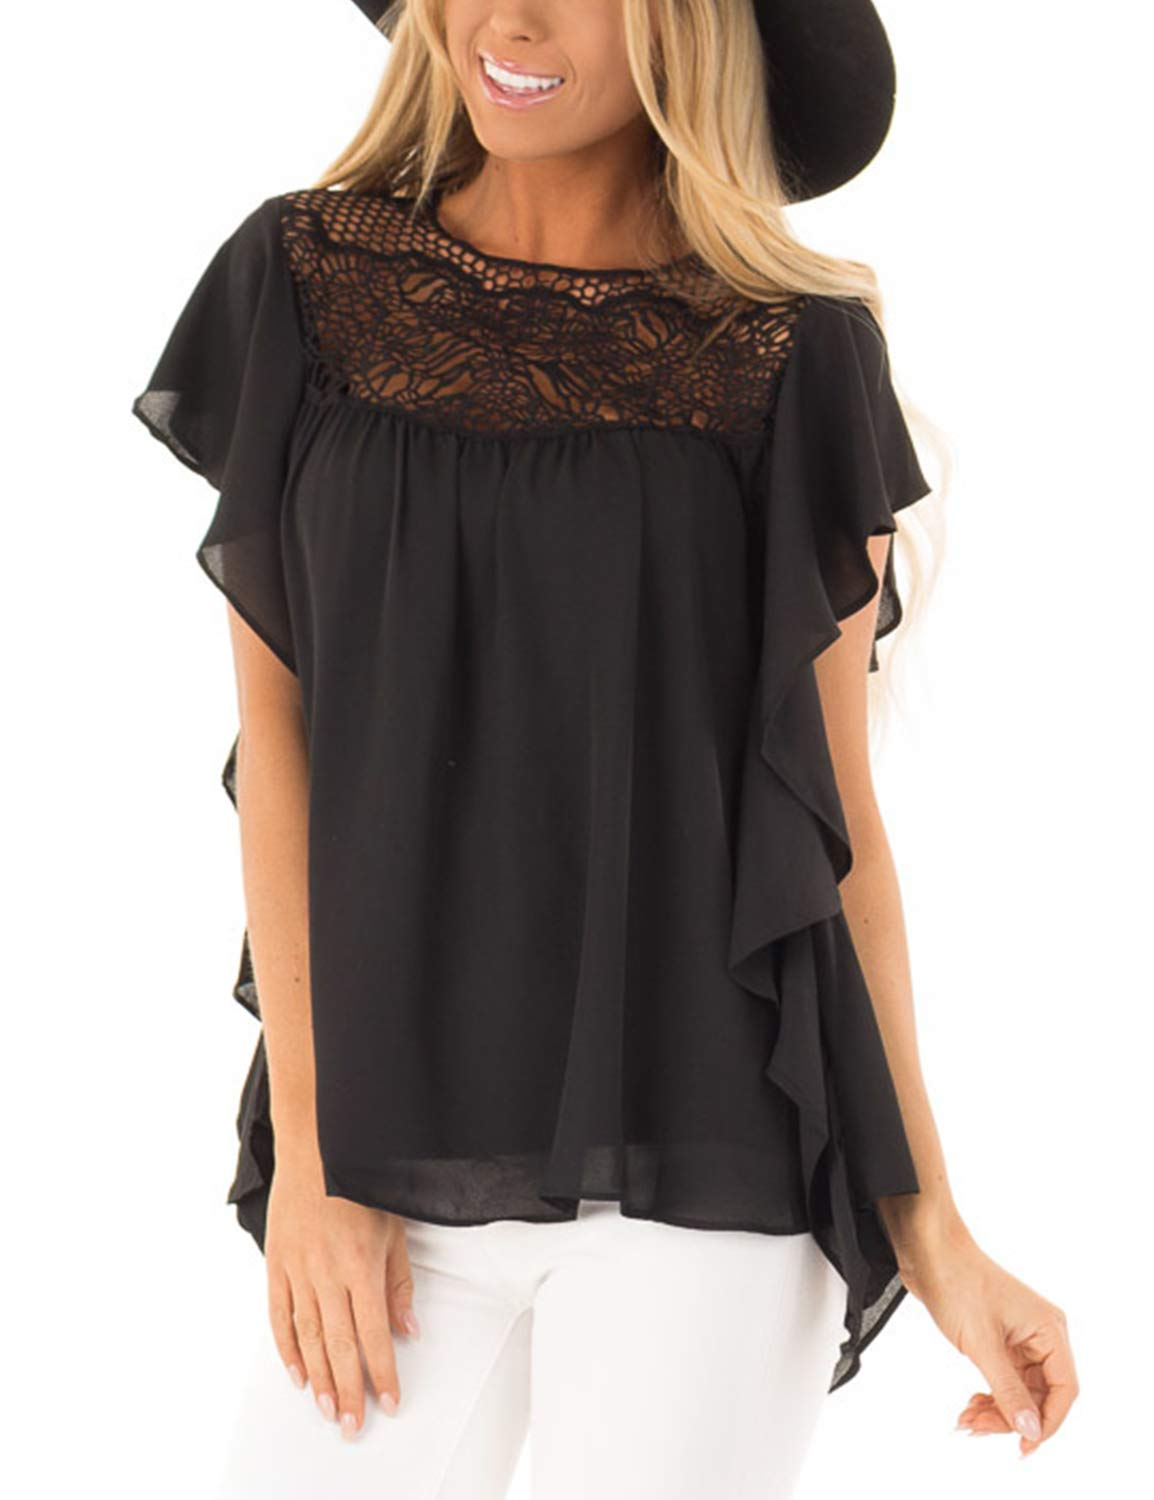 BMJL Women's Round Neck Short Sleeve T Shirt Lace Blouse Sexy Hollow Out Ruffle Top Black